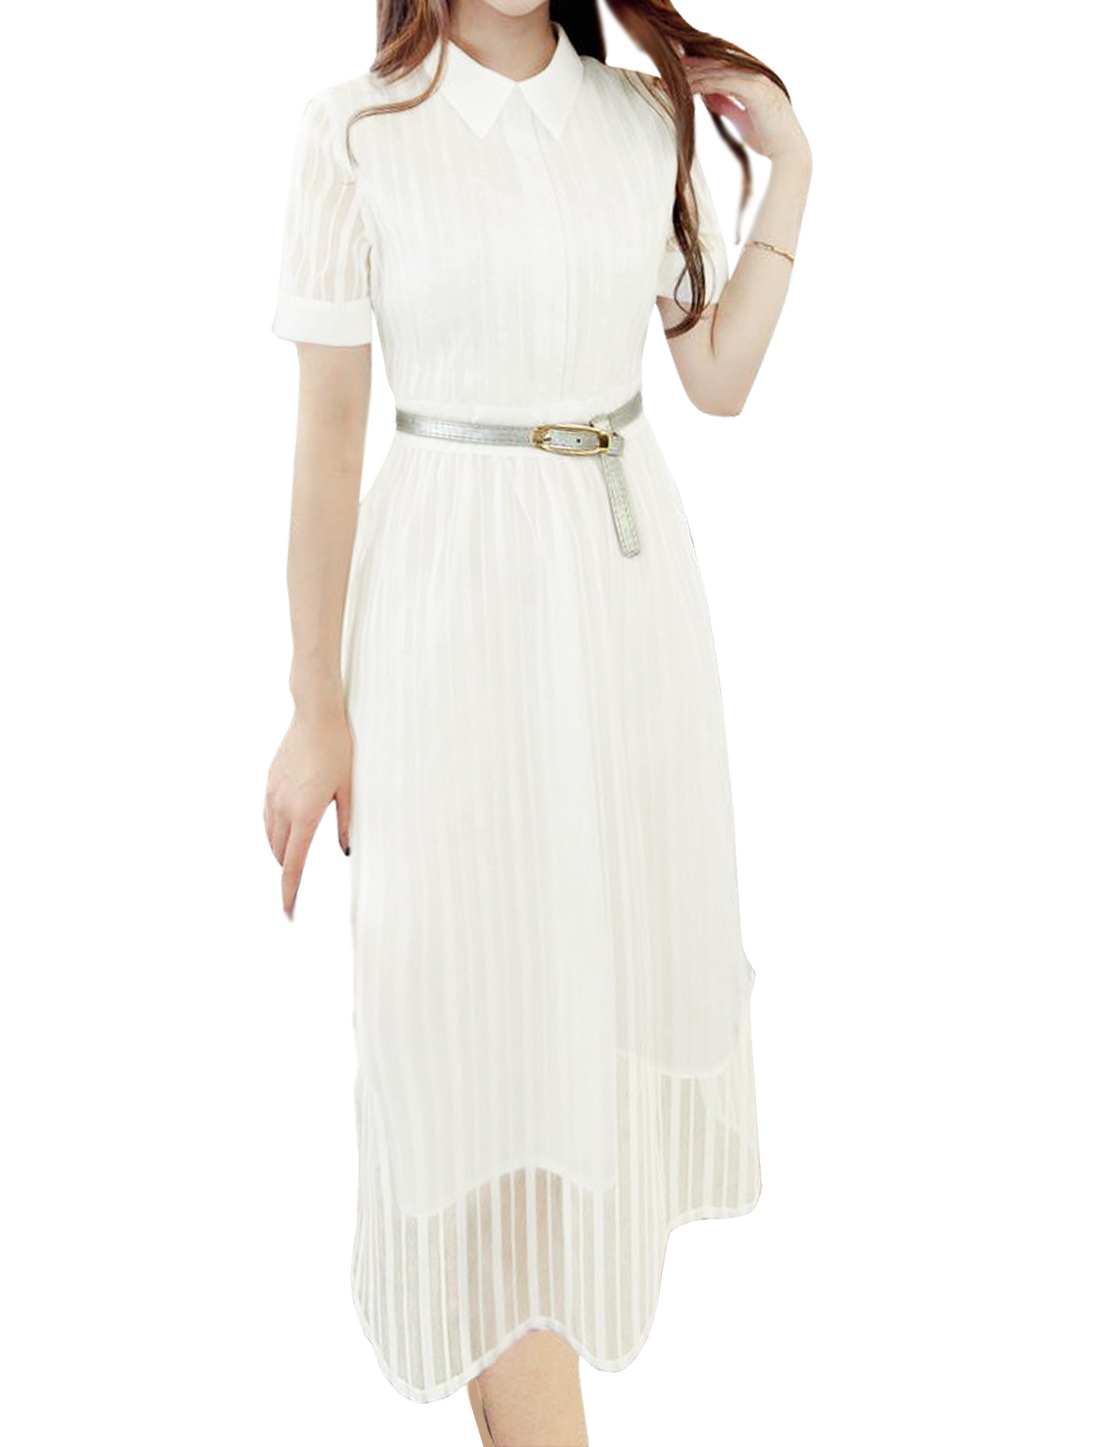 Women Point Collar Stripes Organza Midi Dress w Belt White XS